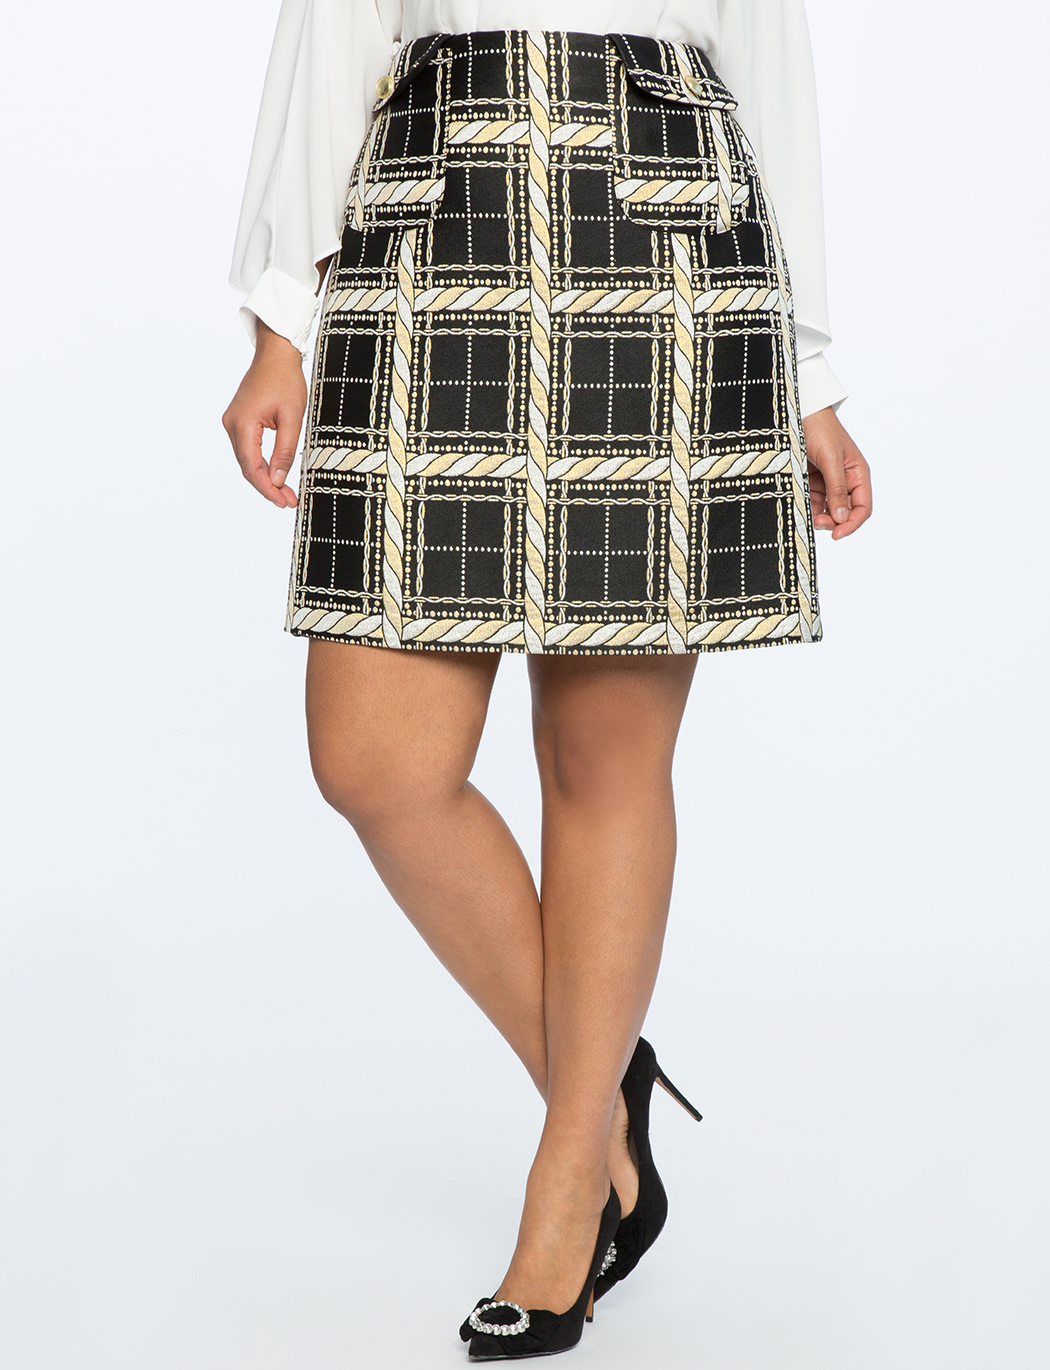 59ae4a7b4 Brocade A-Line Skirt | Women's Plus Size Skirts | ELOQUII